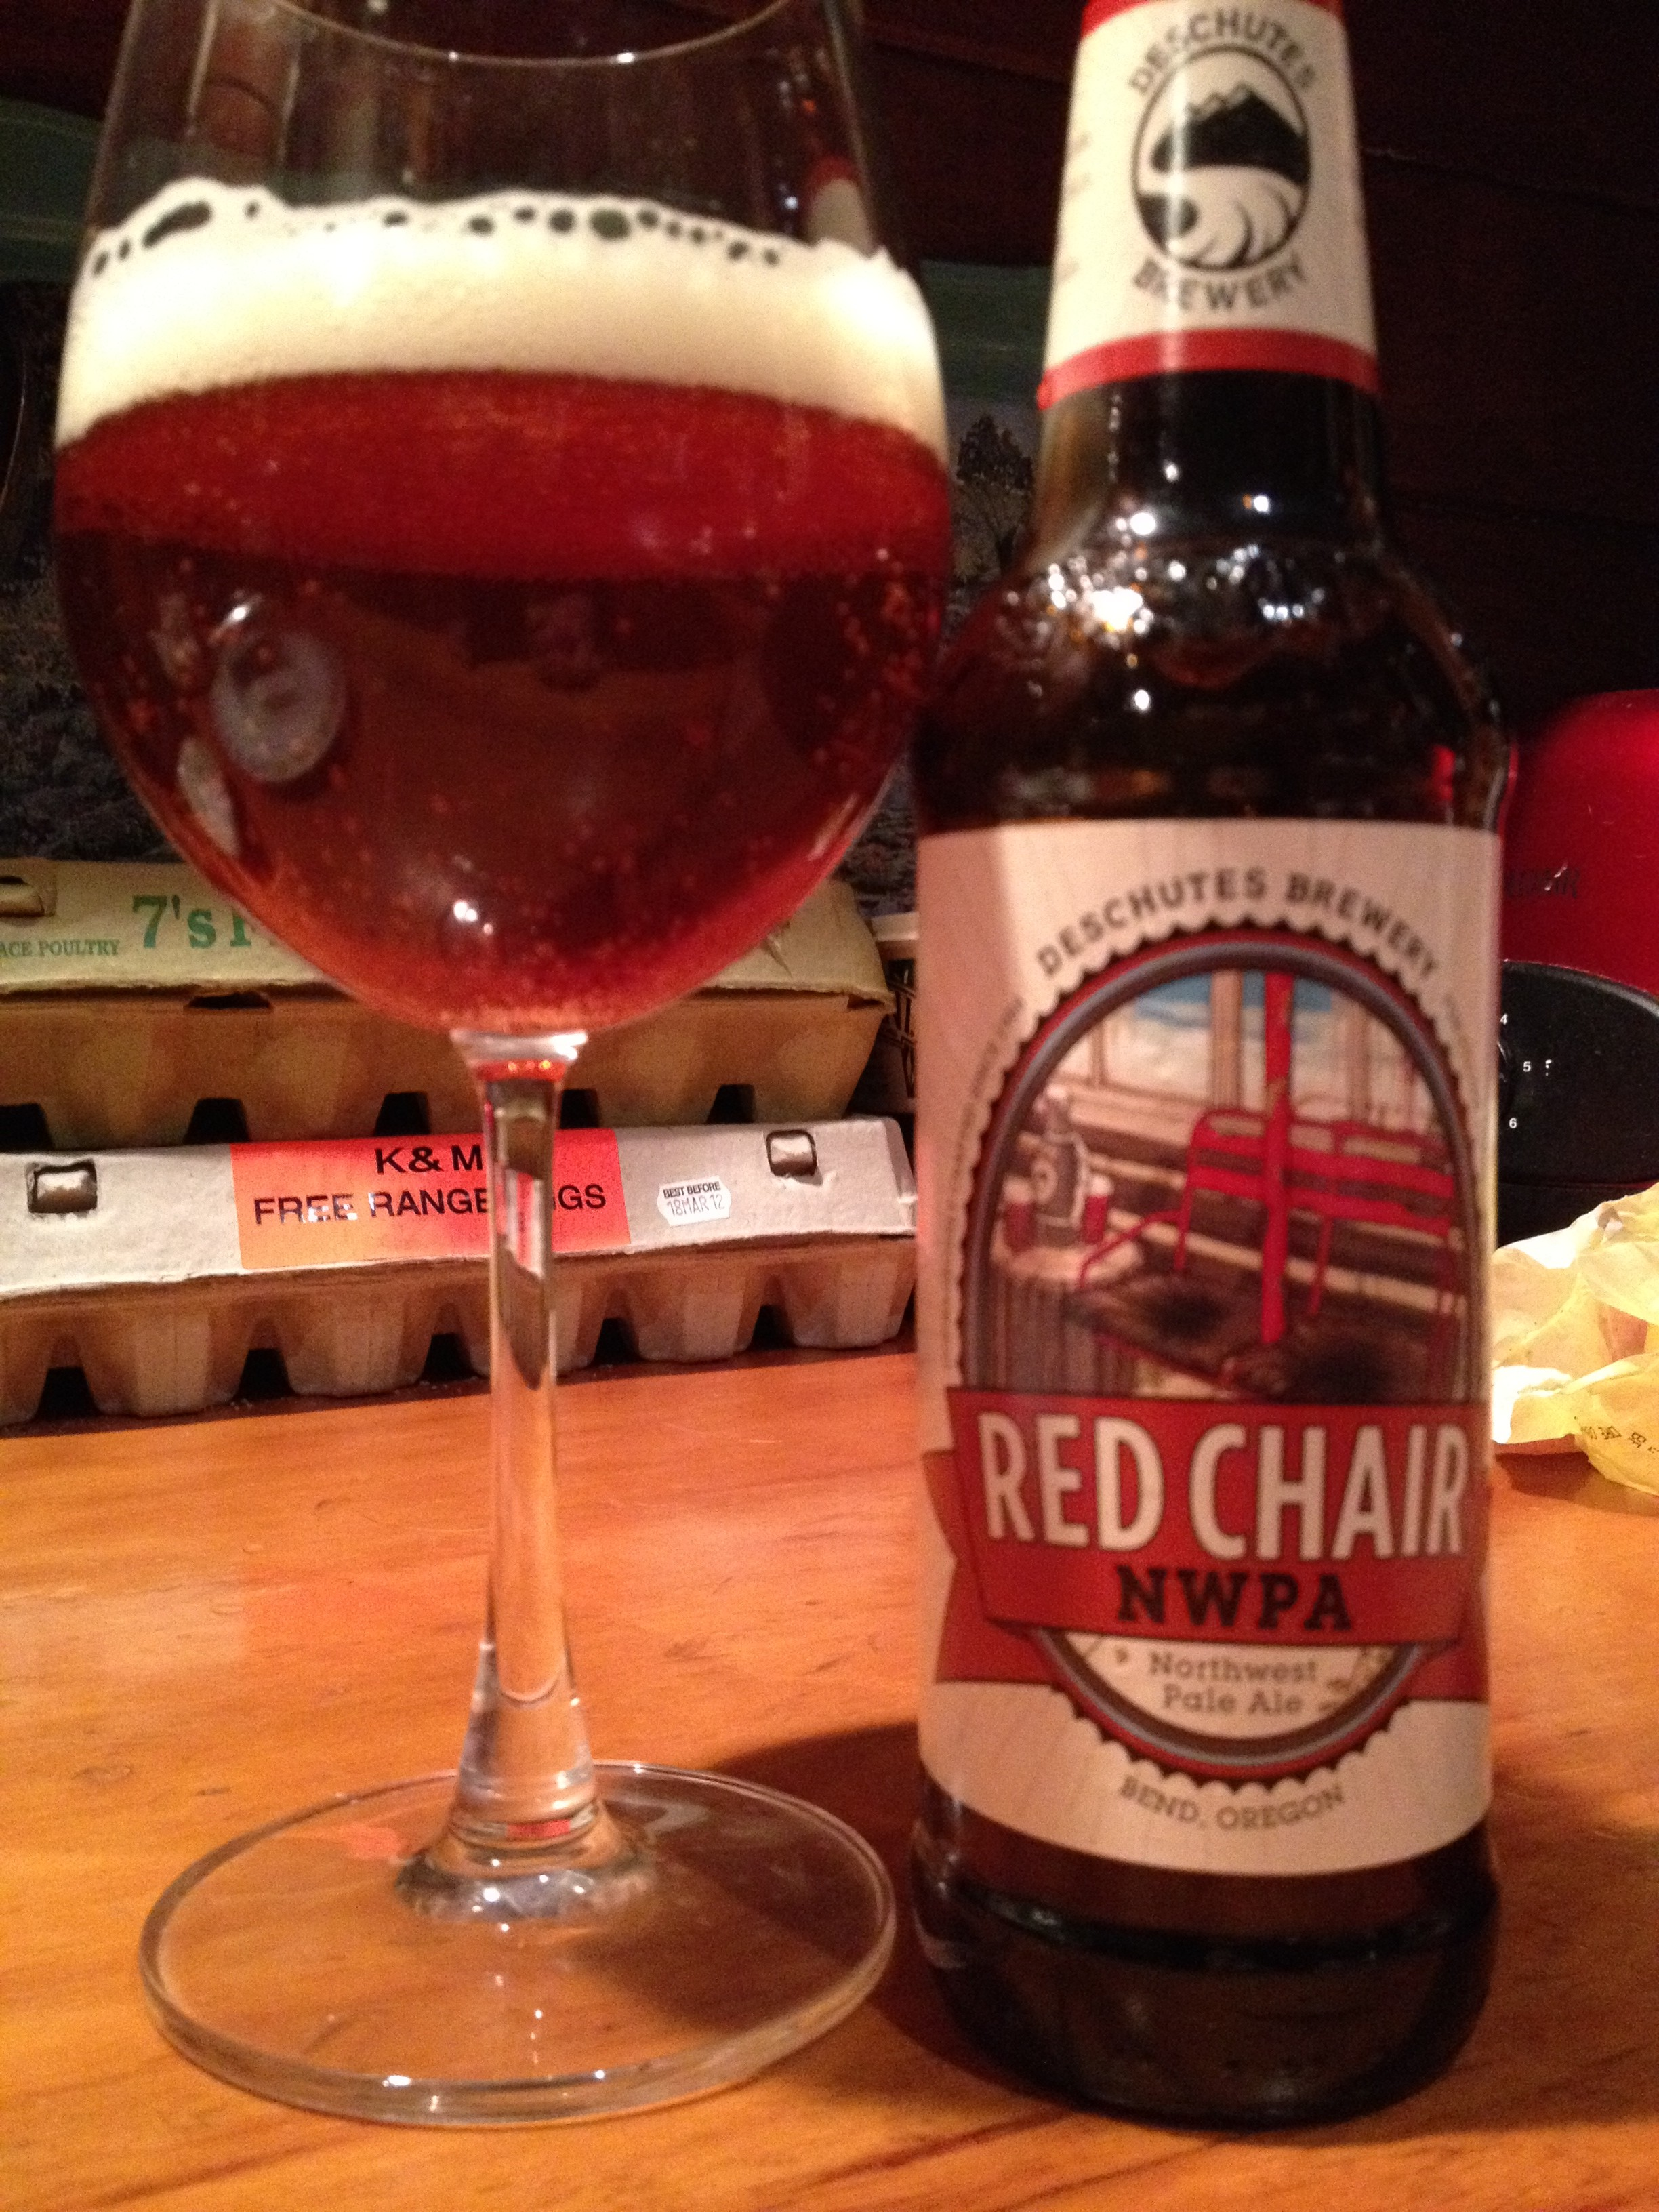 red chair nwpa clone chairs for tall people pale ale beer a year 251 deschutes